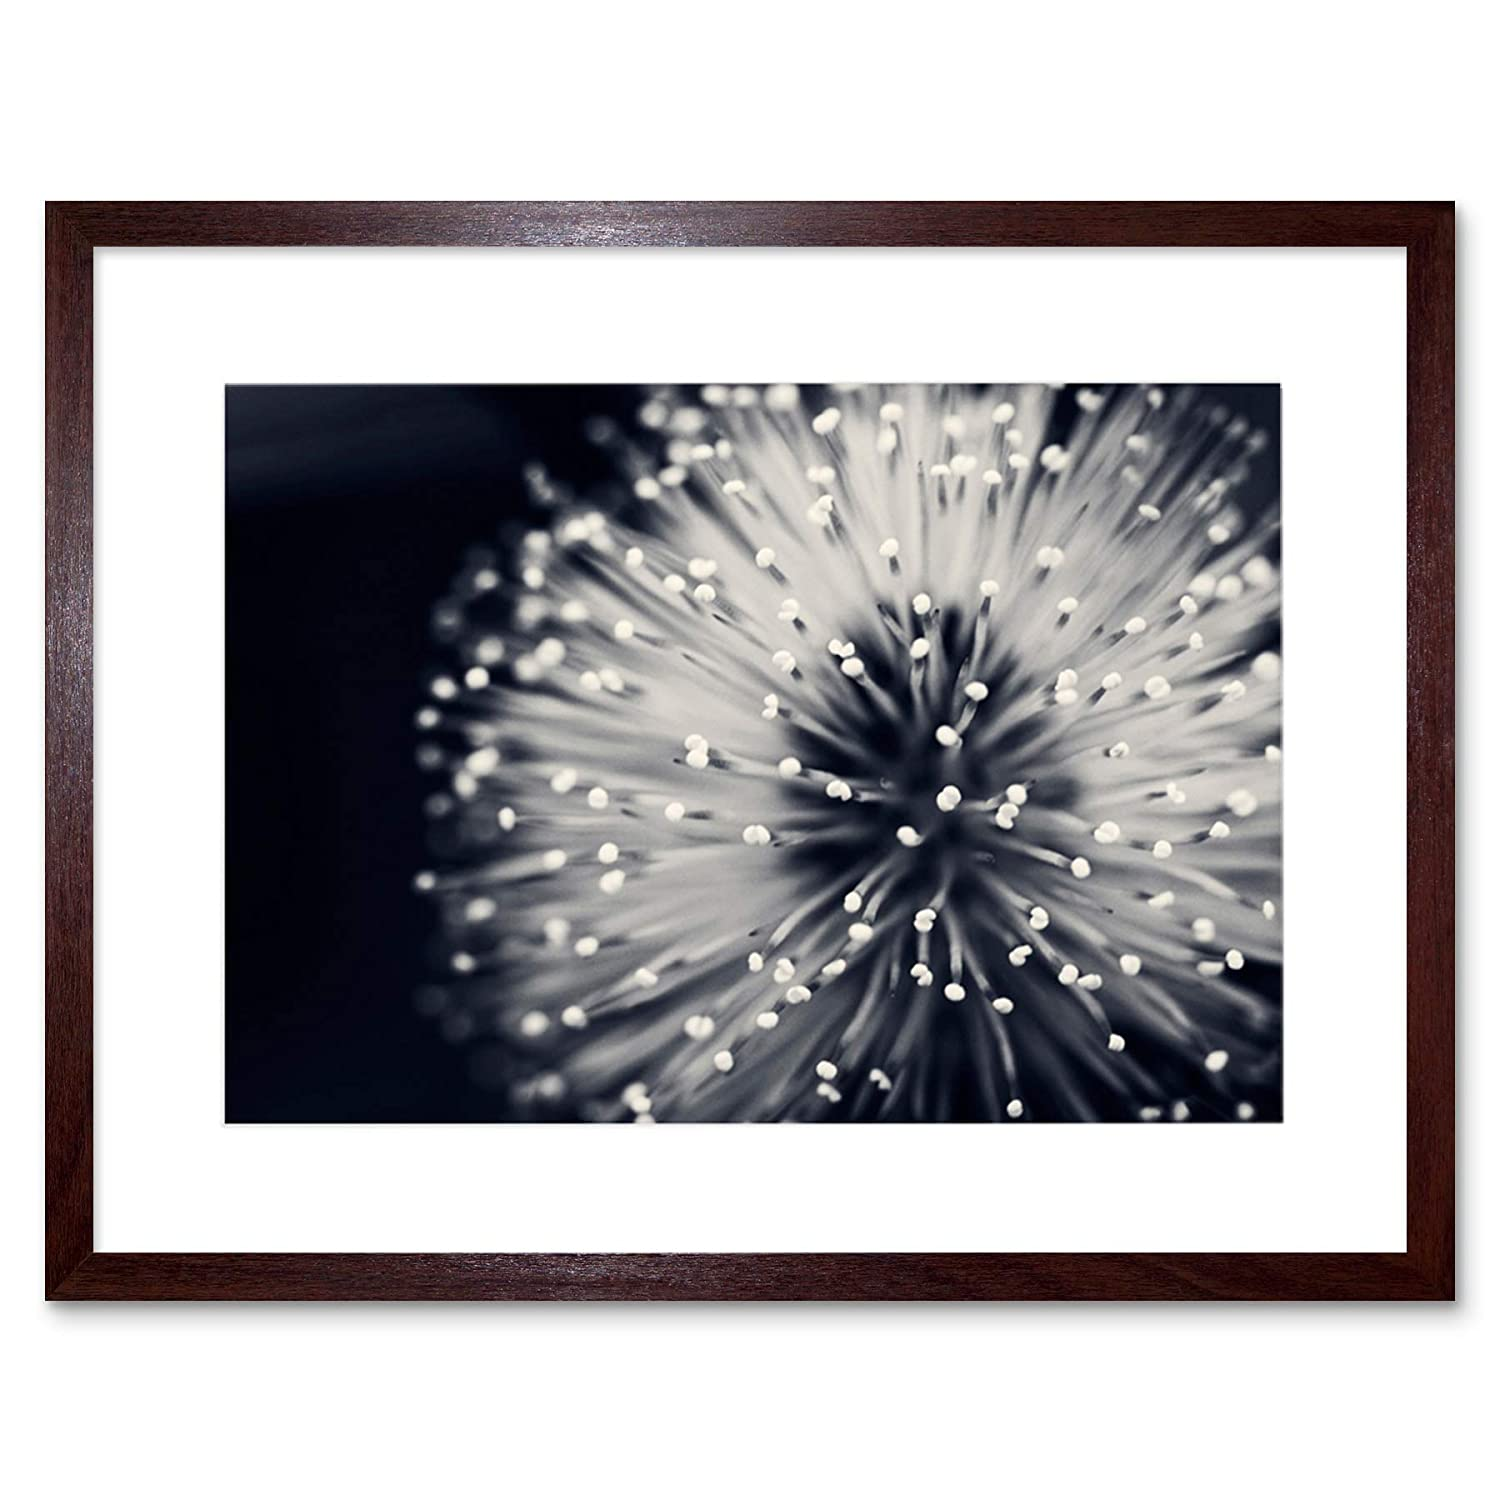 The art stop photo nature plant flower black white beautiful home framed print f12x4247